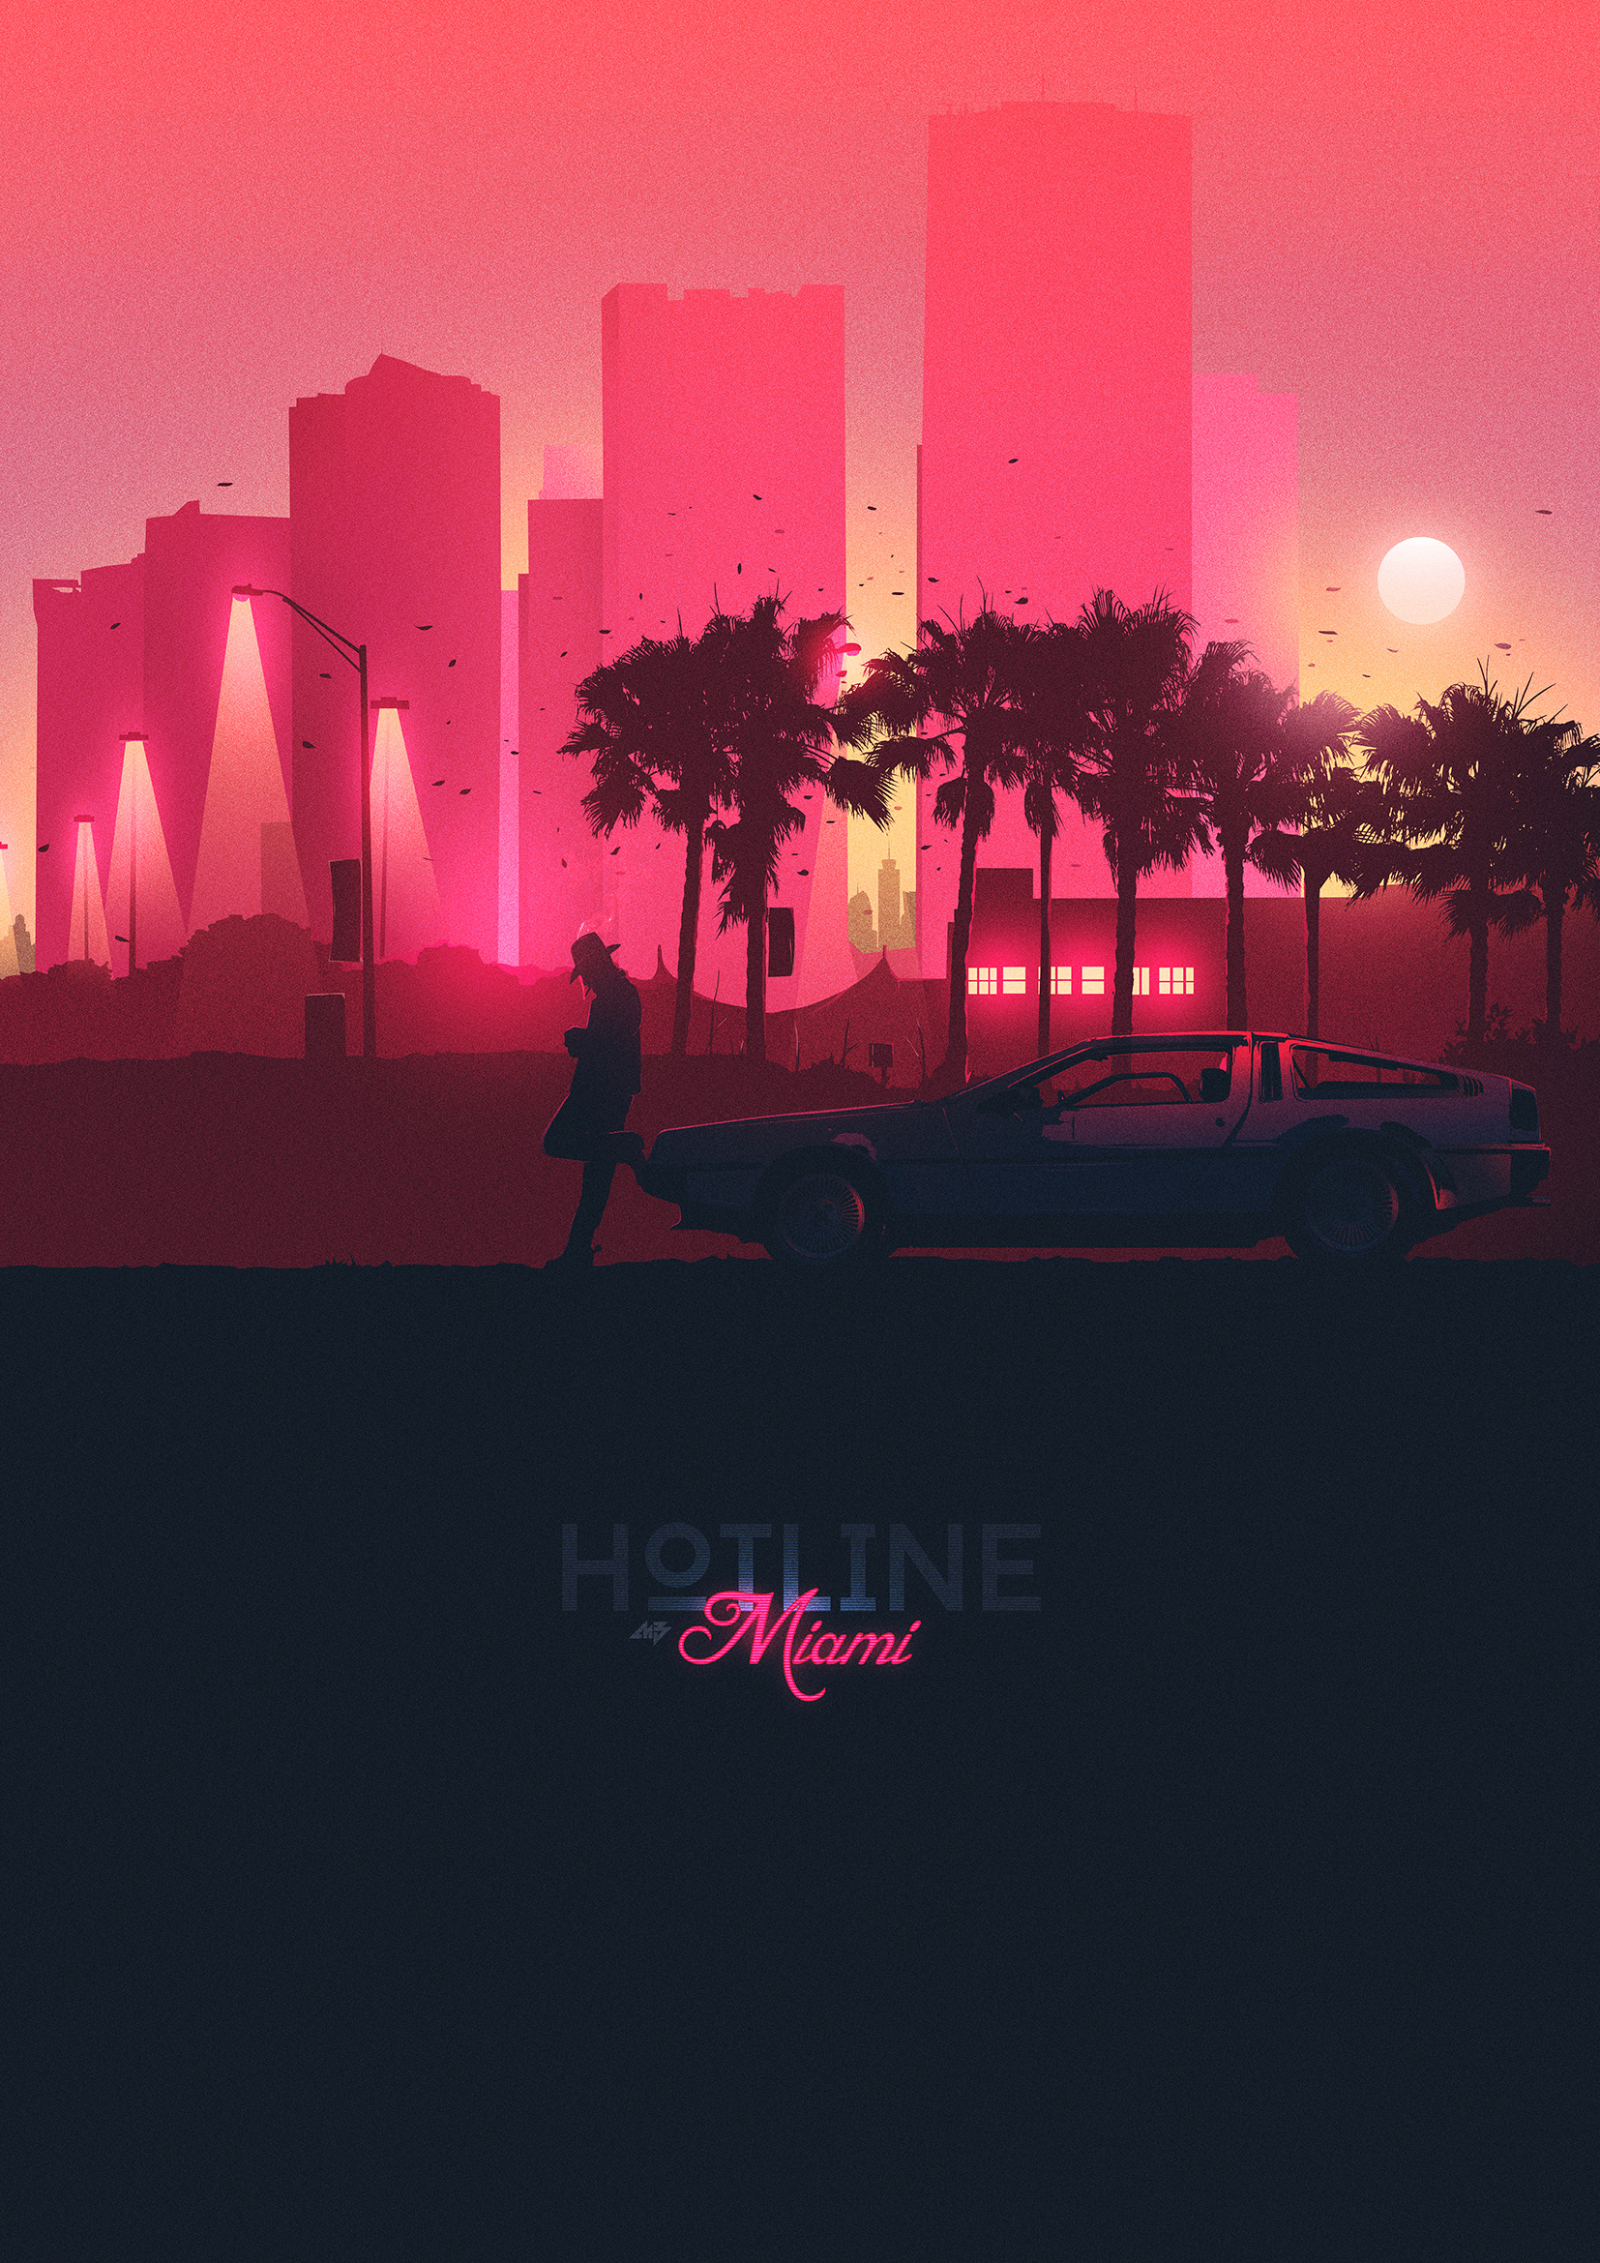 Hotline miami posterspy - Doge steam background ...